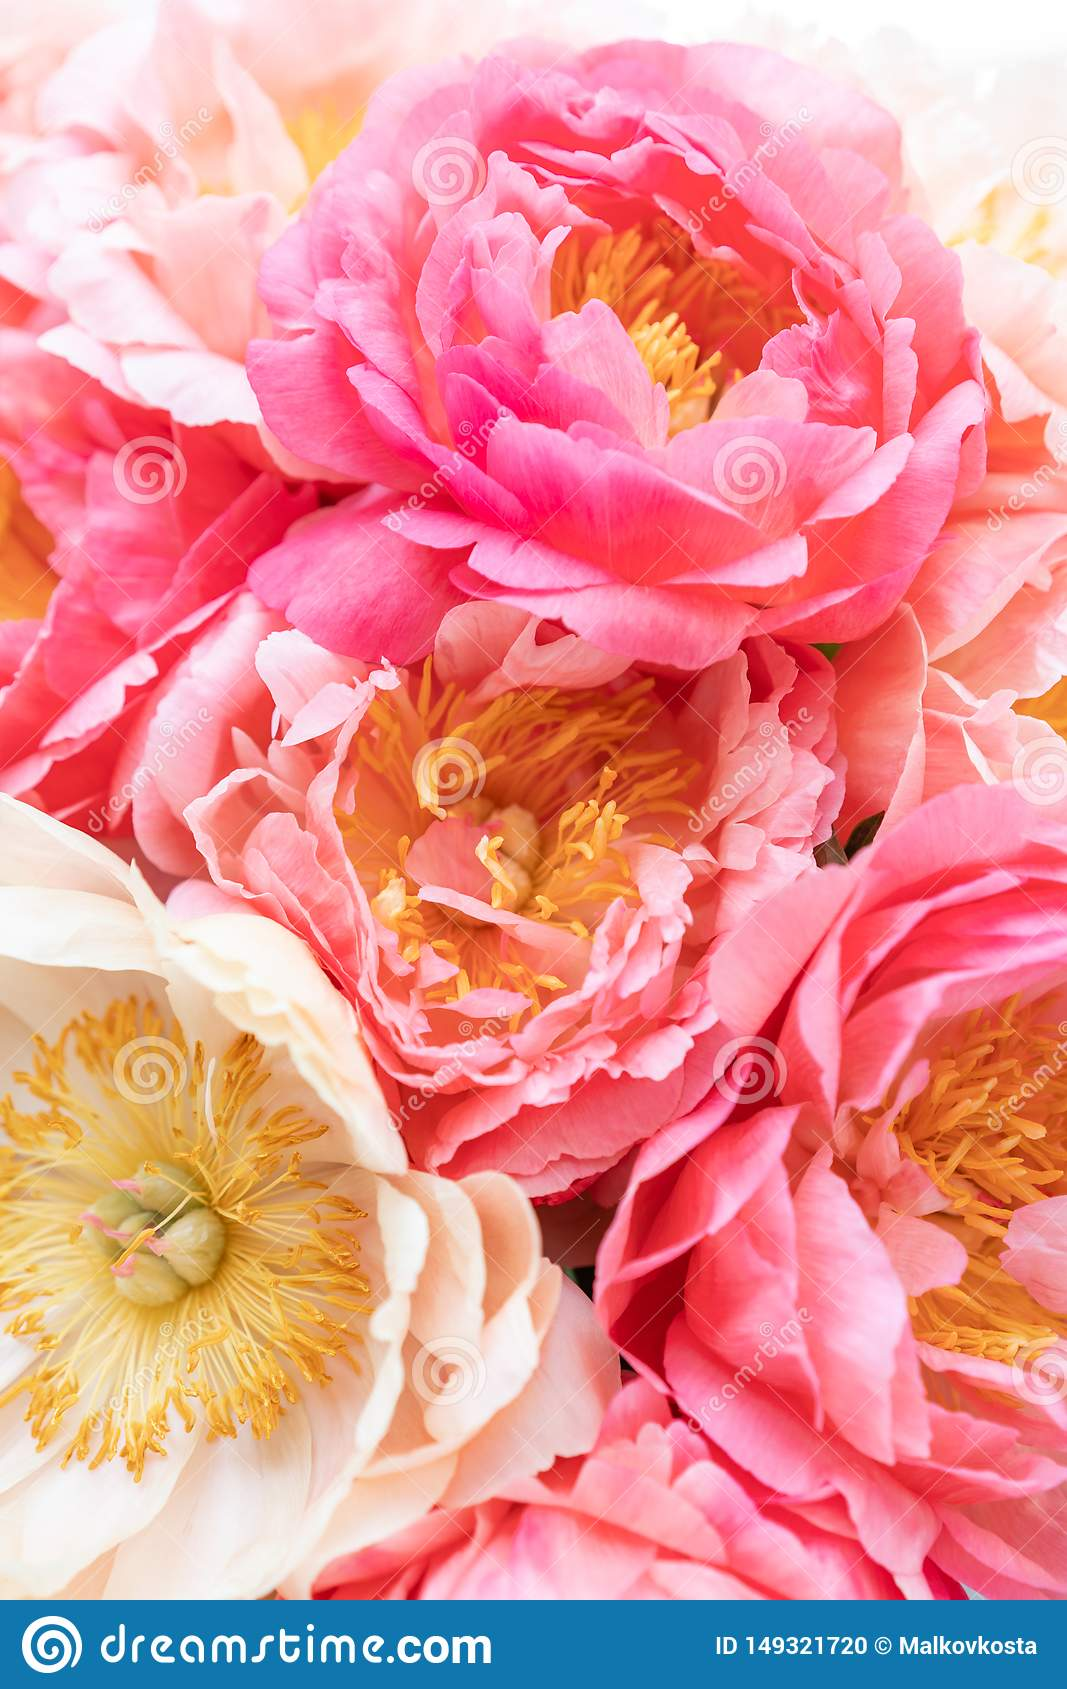 Floral Carpet Or Wallpaper Background Of Coral Peonies Morning